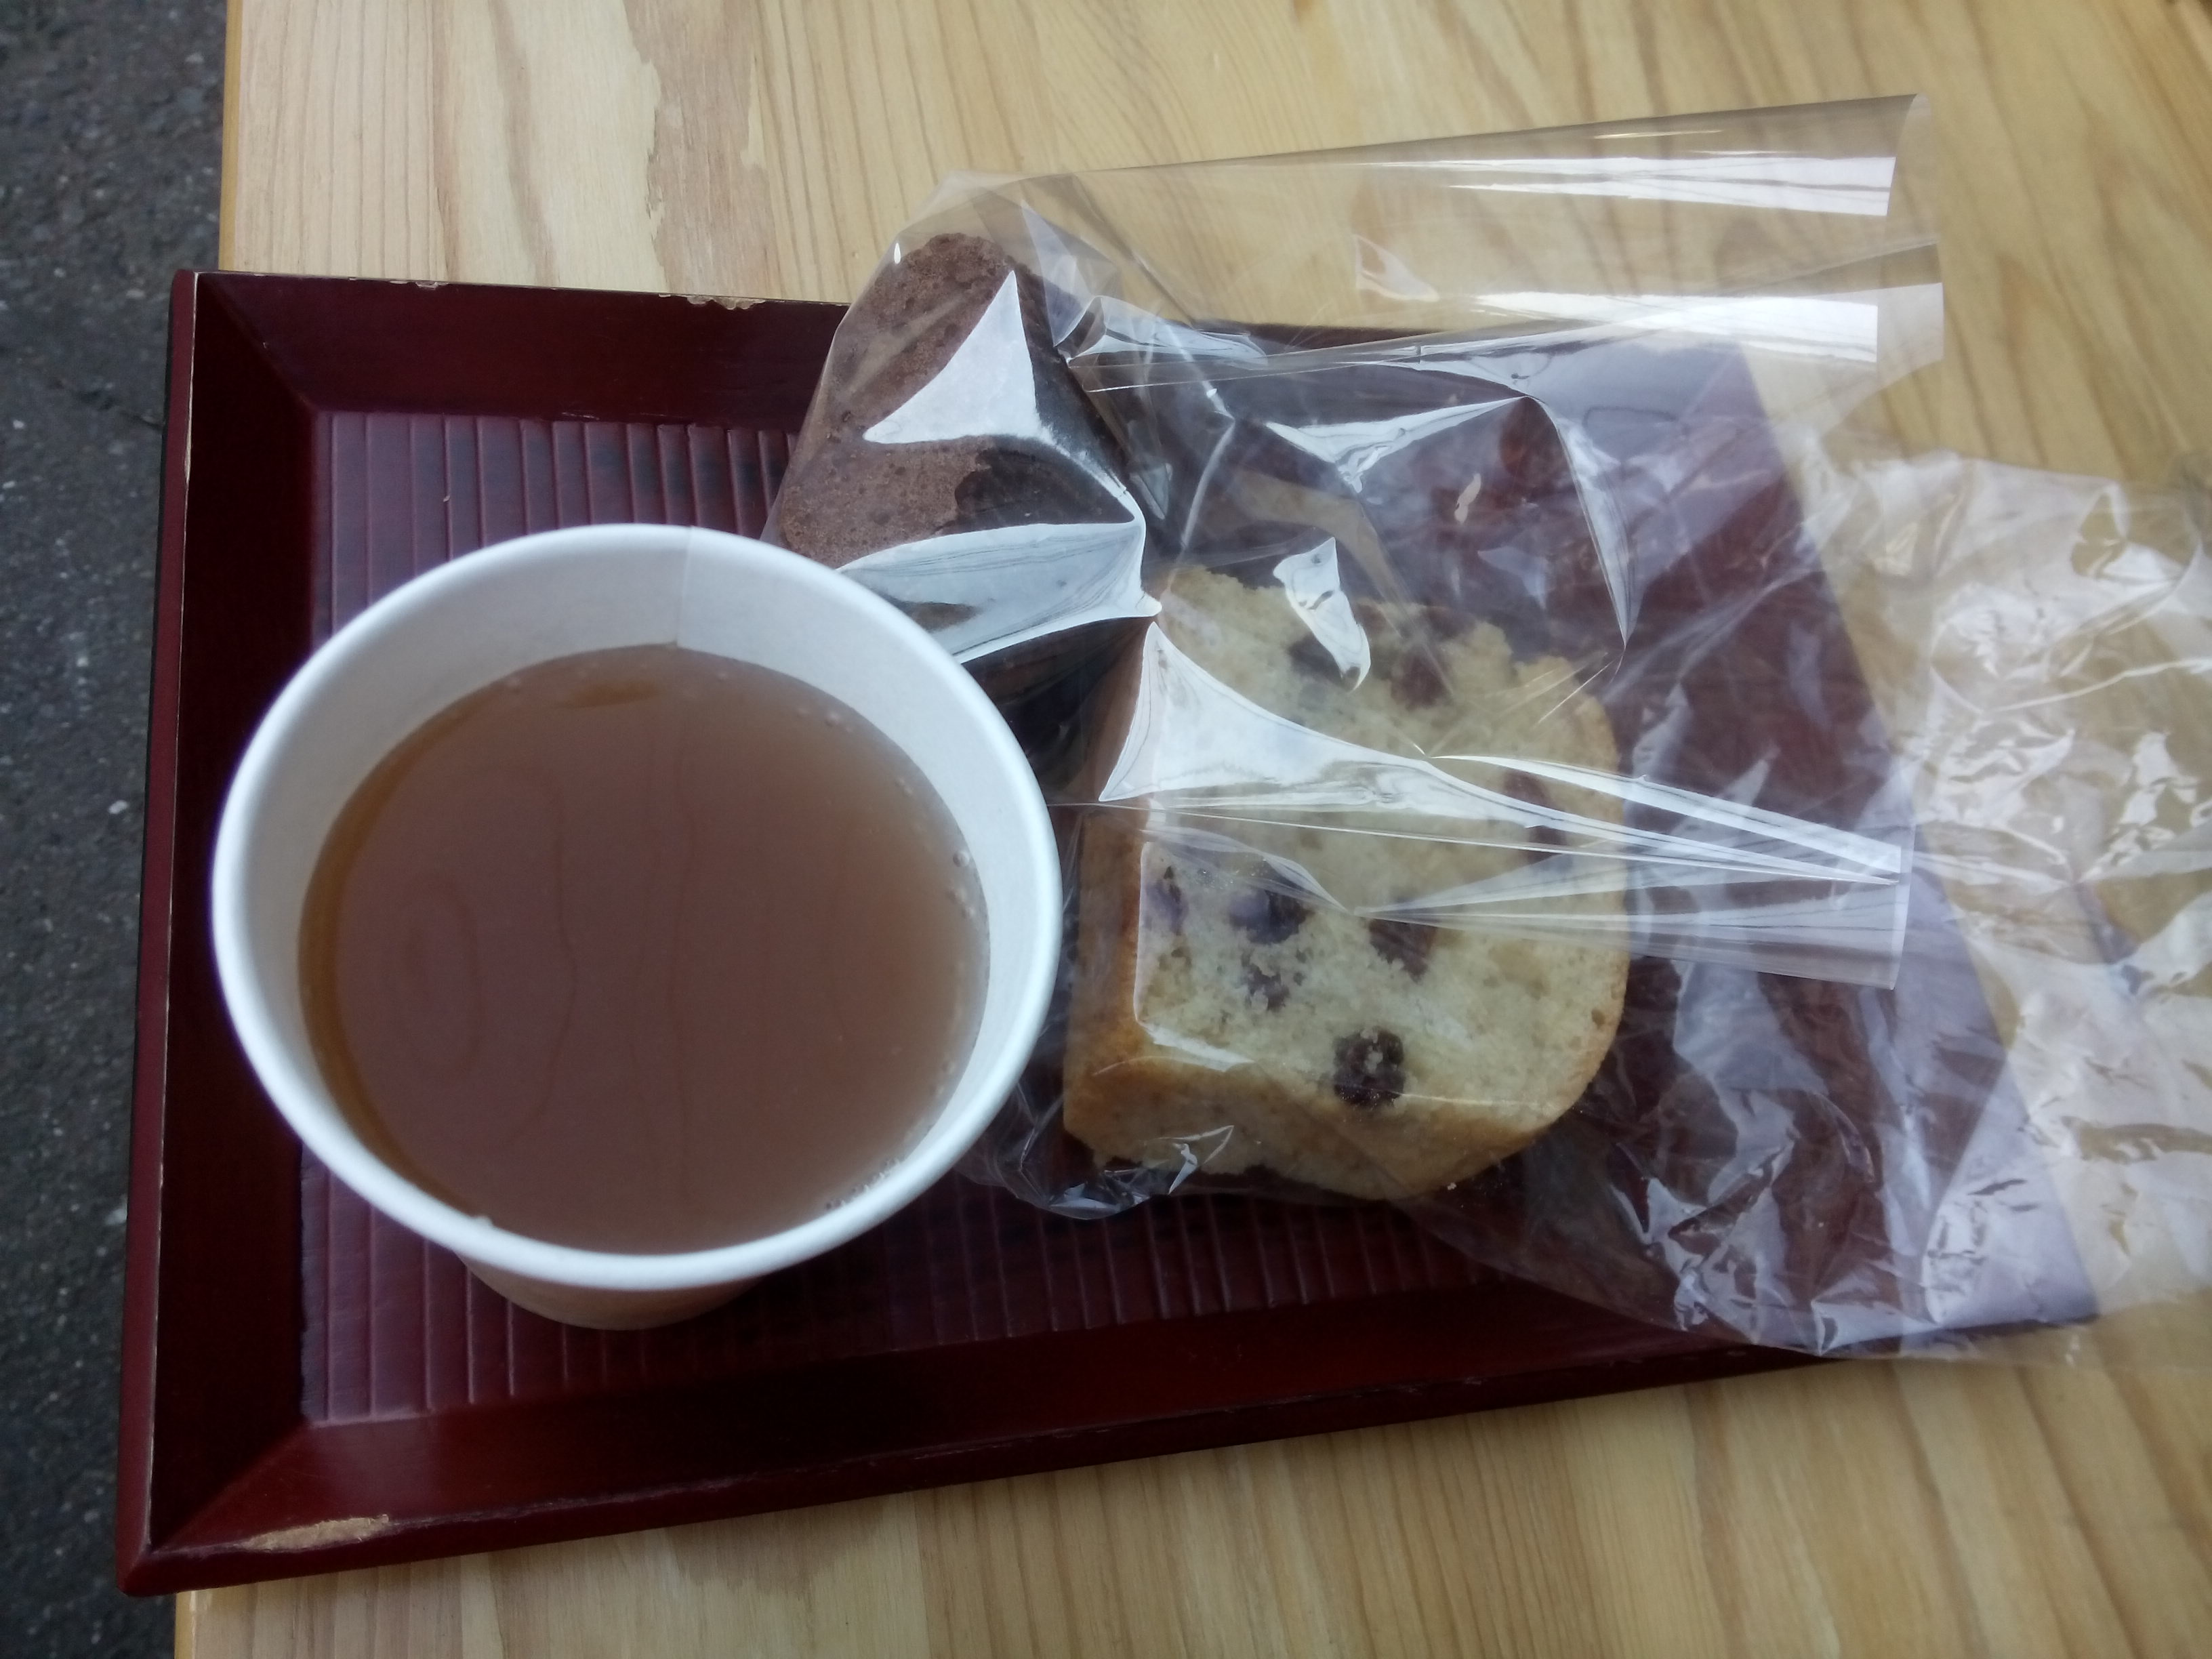 Soy bean tea and cakes.